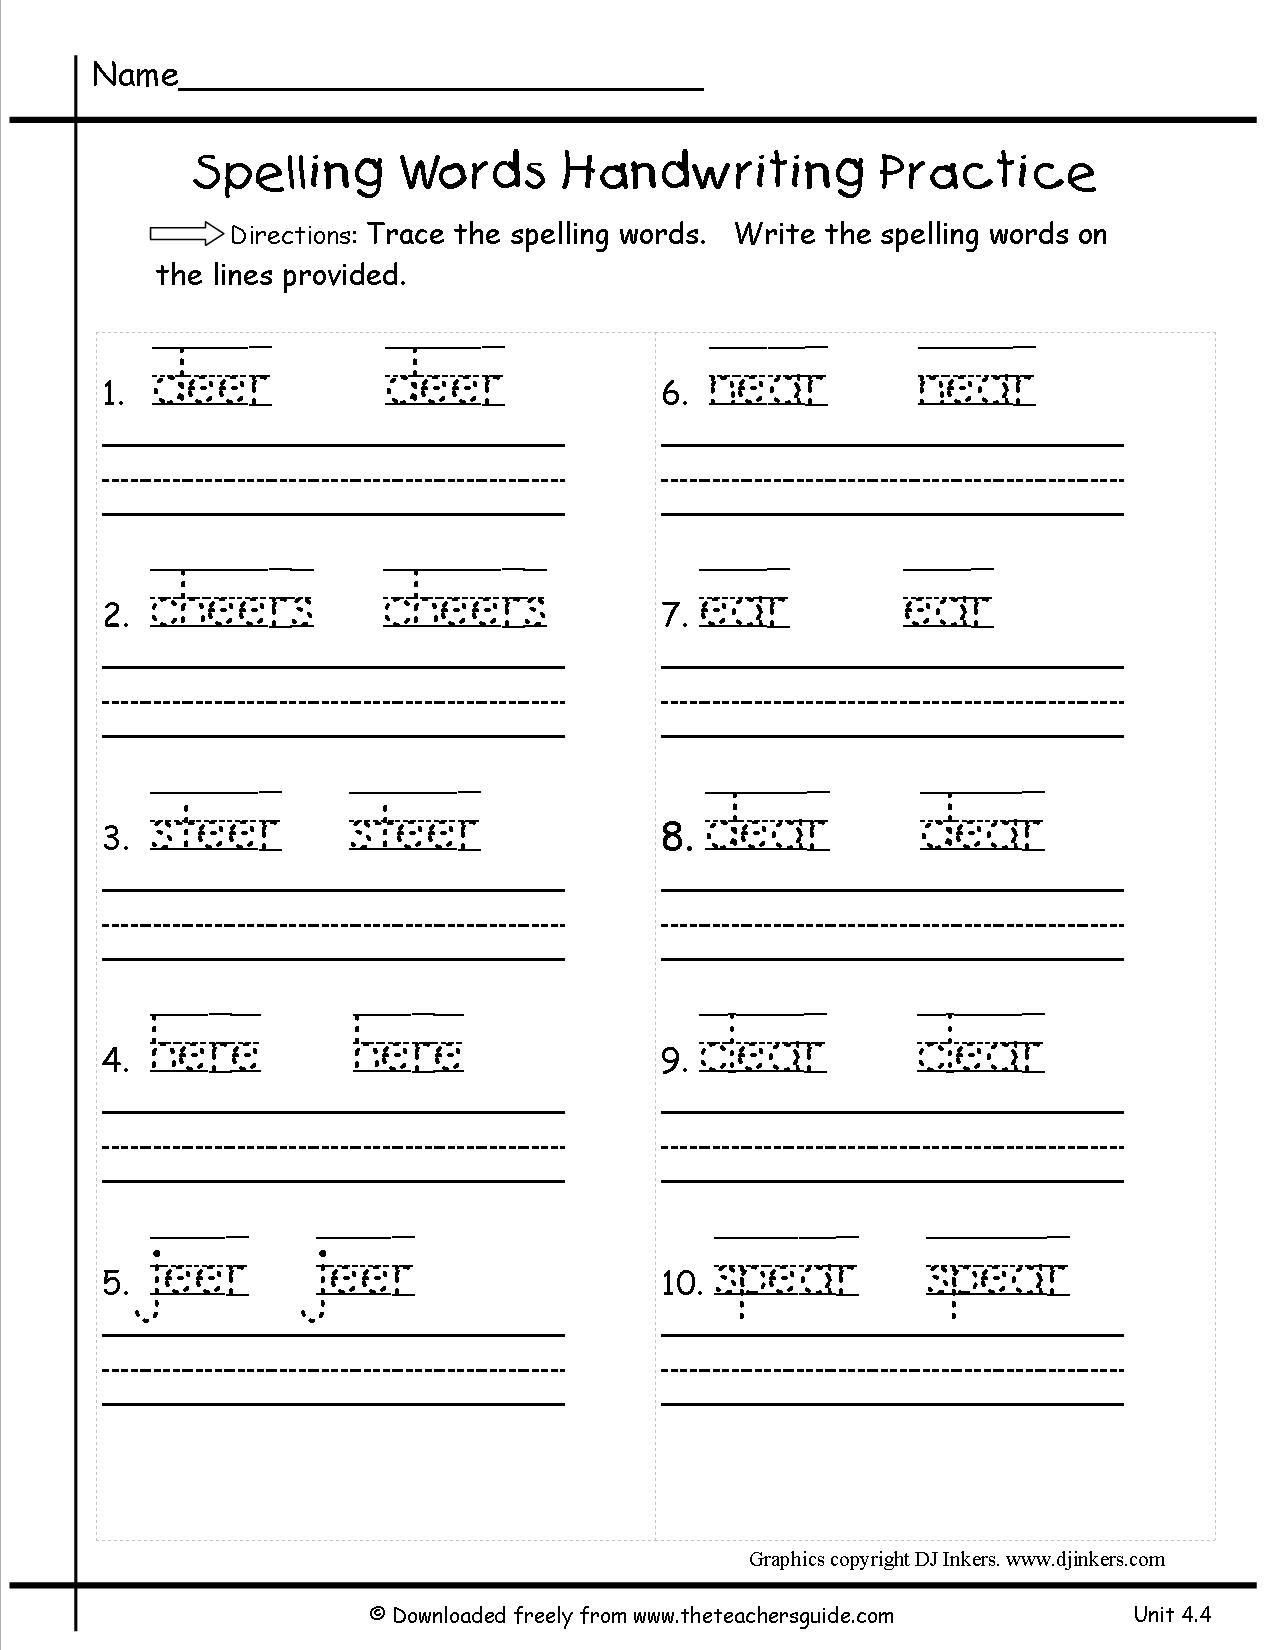 Handwriting Worksheets For First Grade 1st Grade Spelling